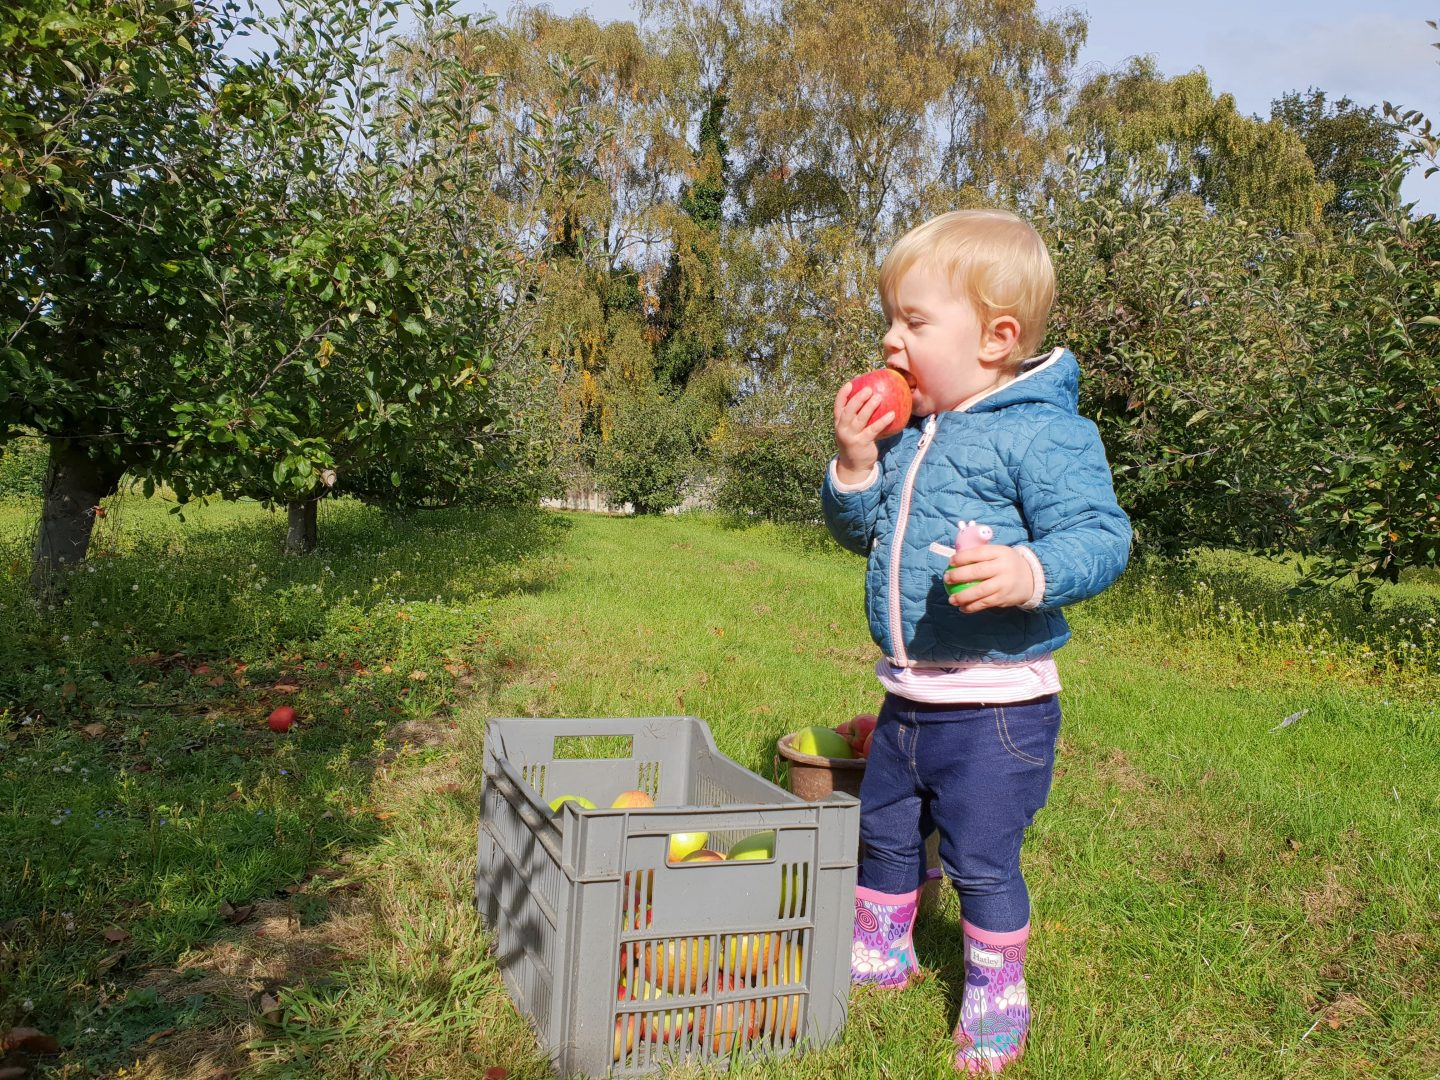 Toddler eating apple after apple picking at Foxendown Farm, Meopham, Kent